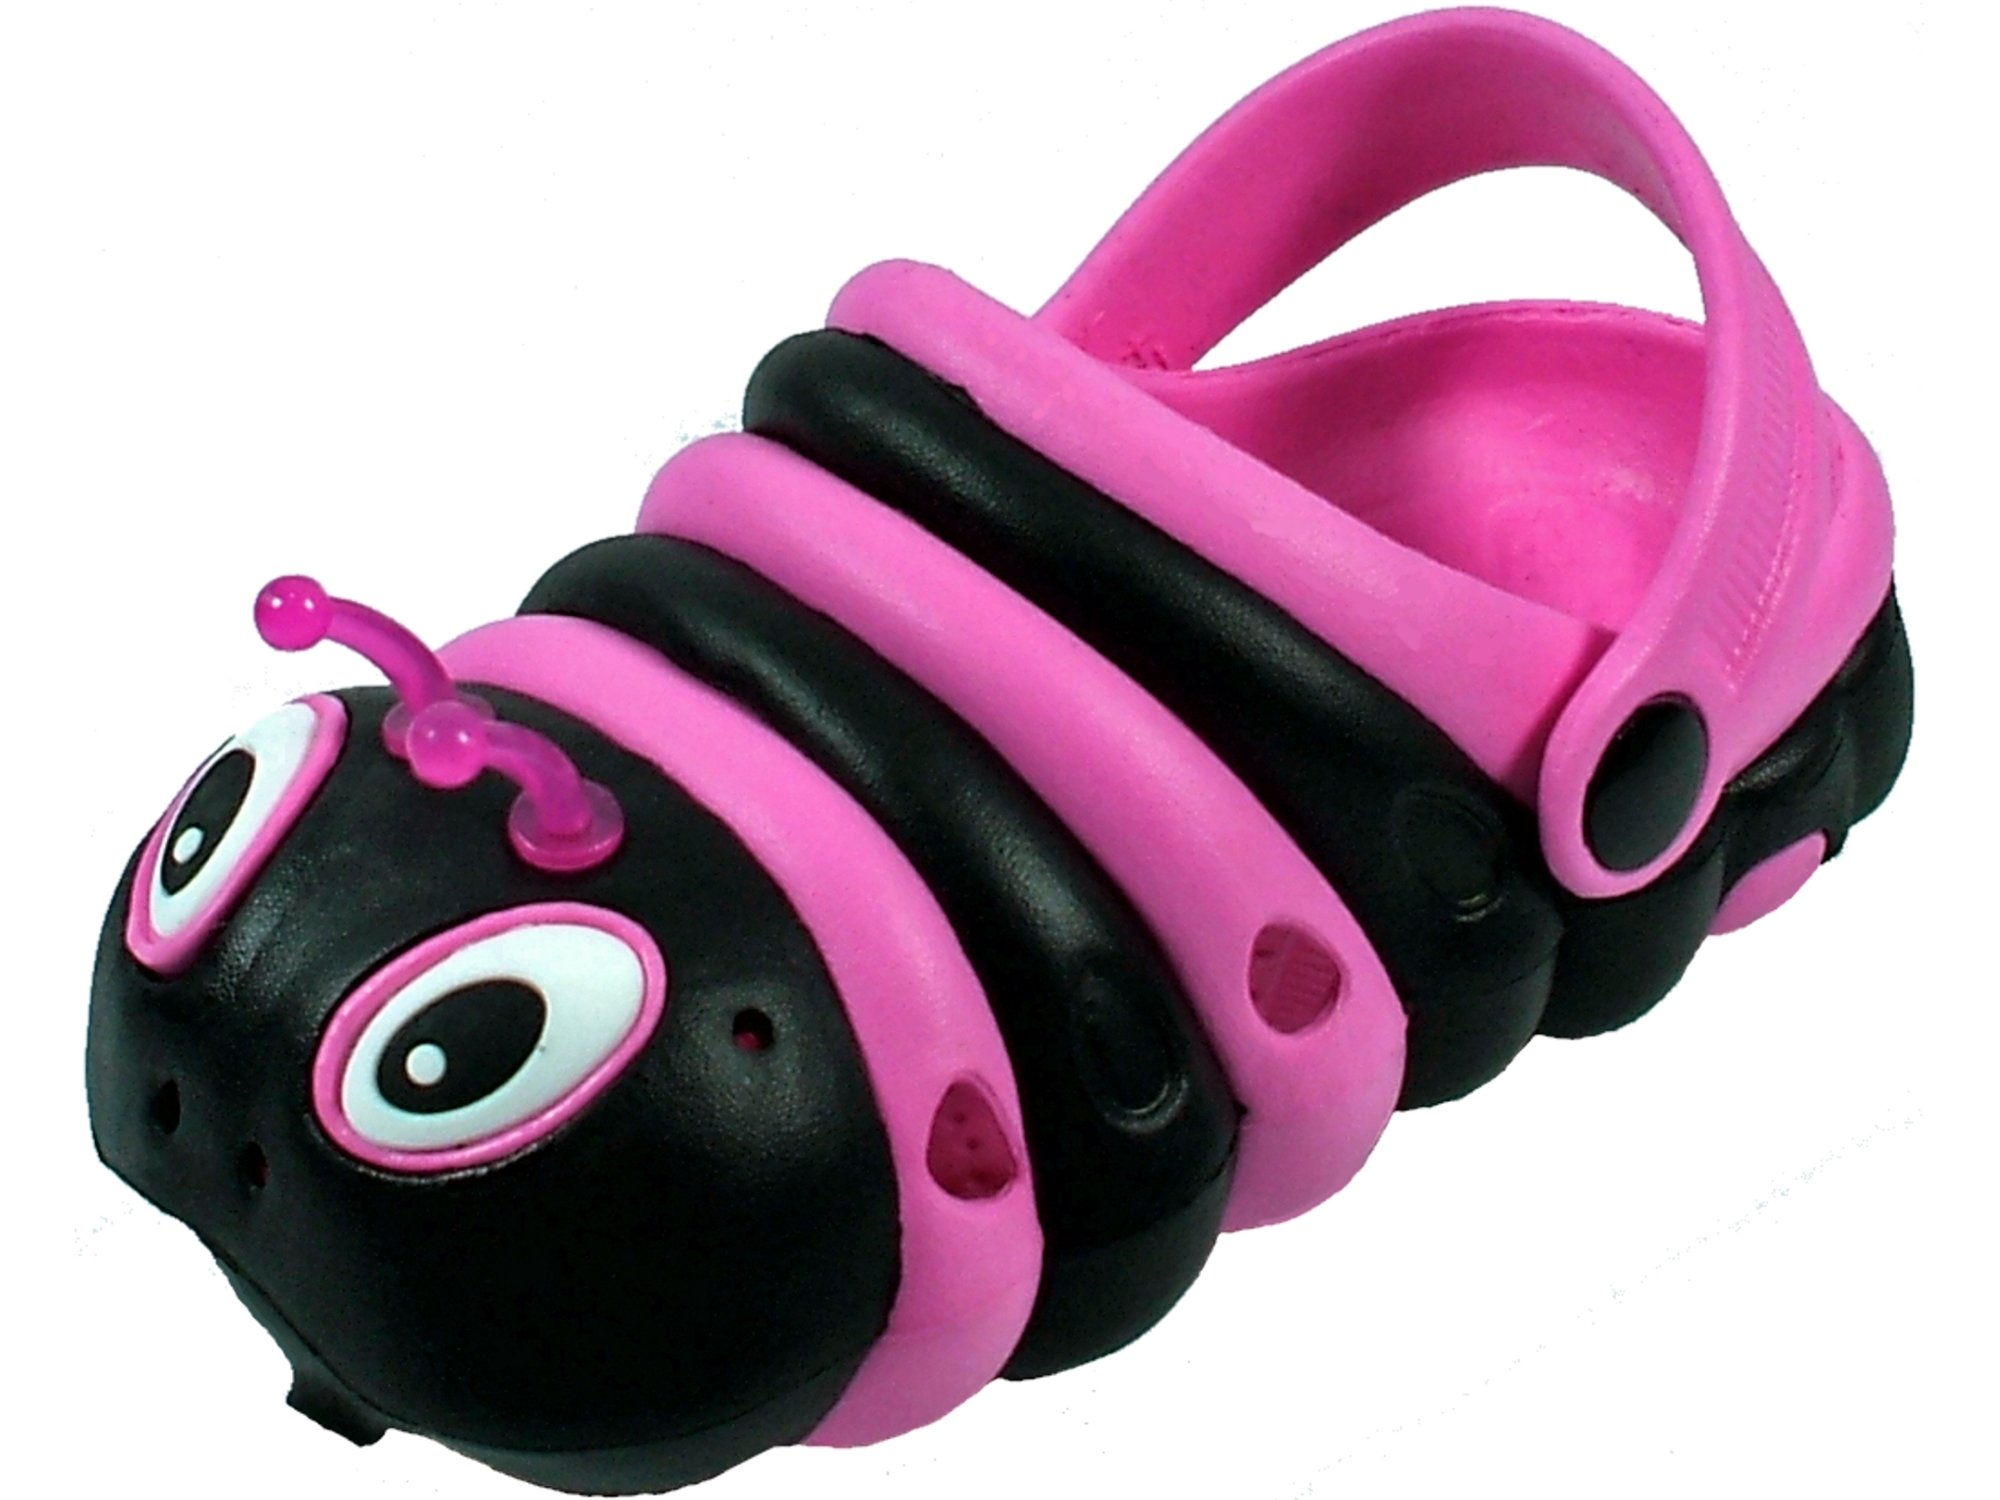 Kids Girls Boys Animal Clog Summer Shoes Walking Slippers (24 (8 M US Toddler), Black/Pink) by Beastie Shoes